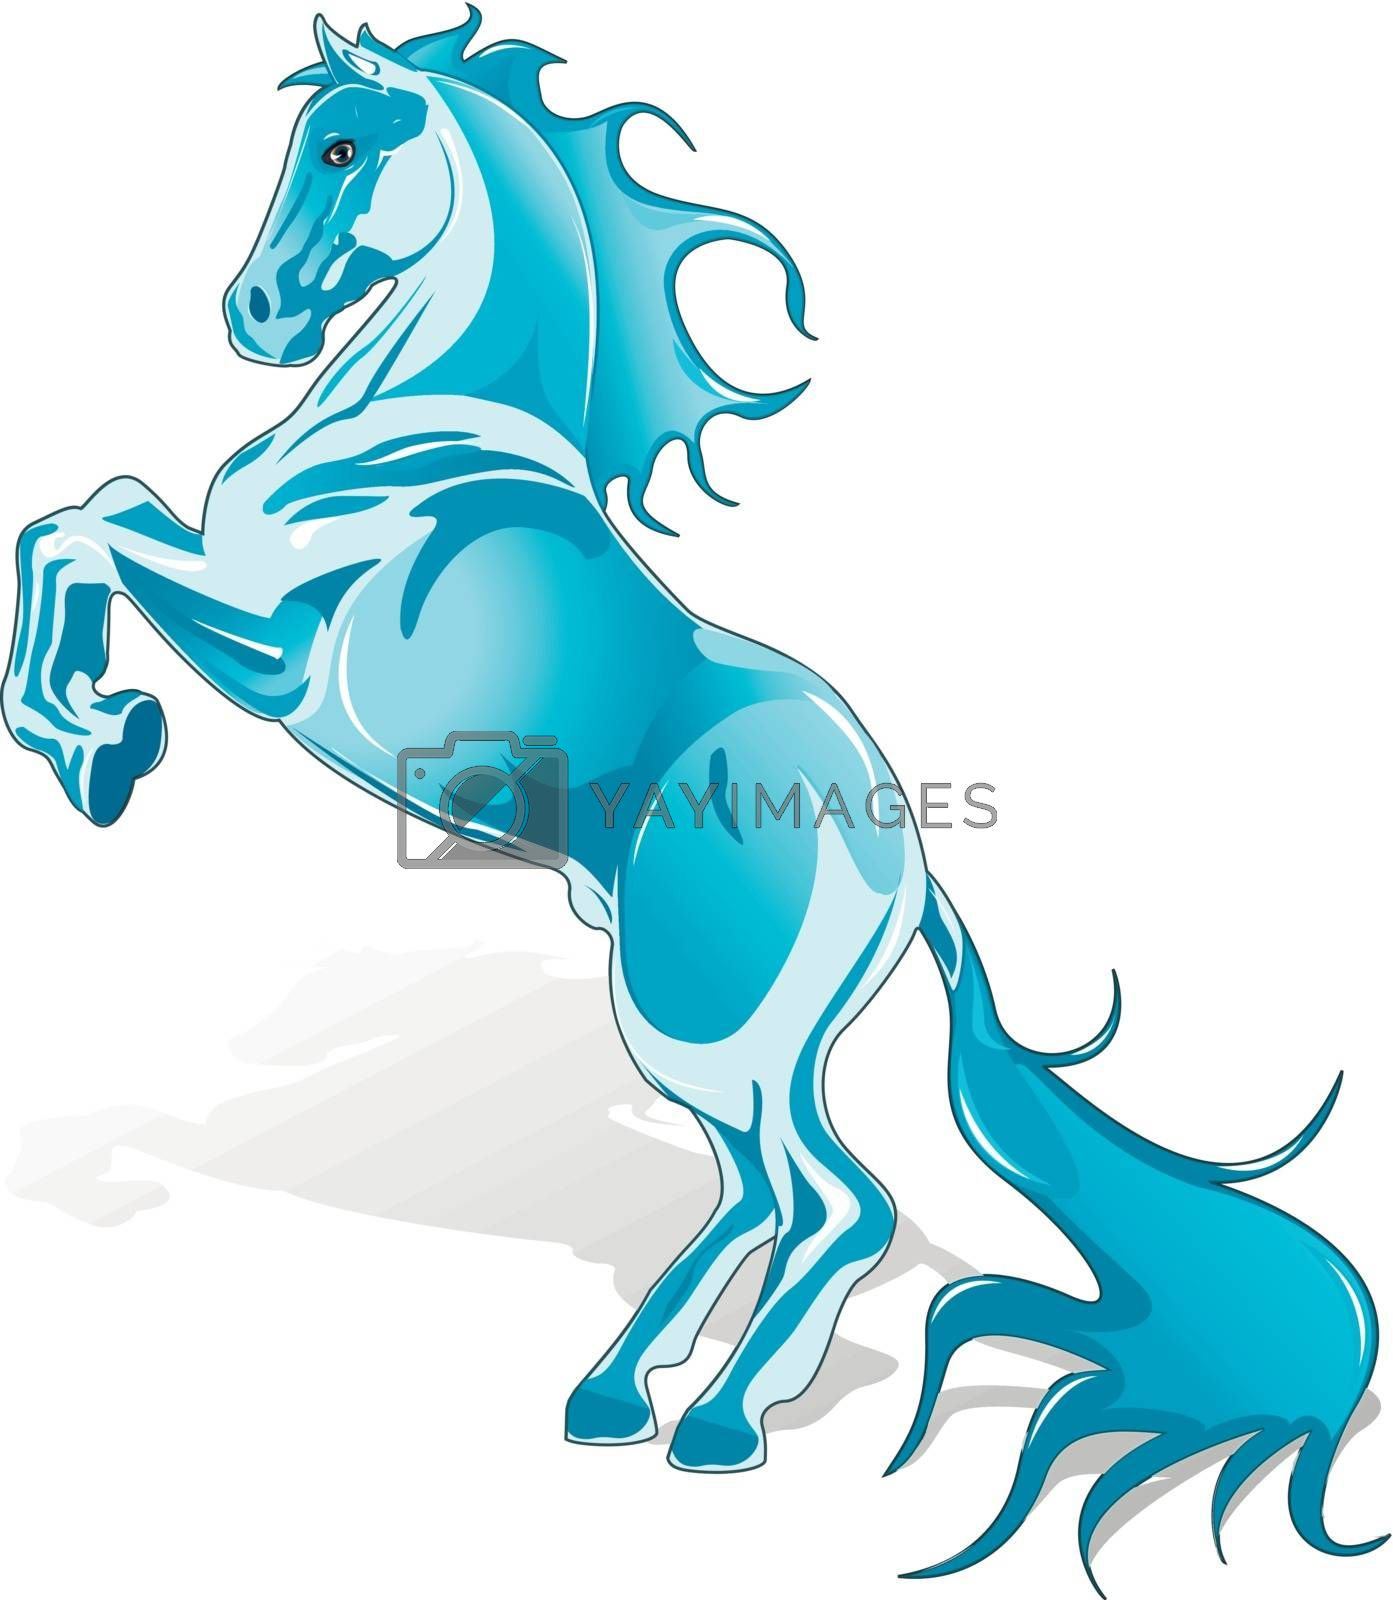 abstract illustration, blue horse on white background